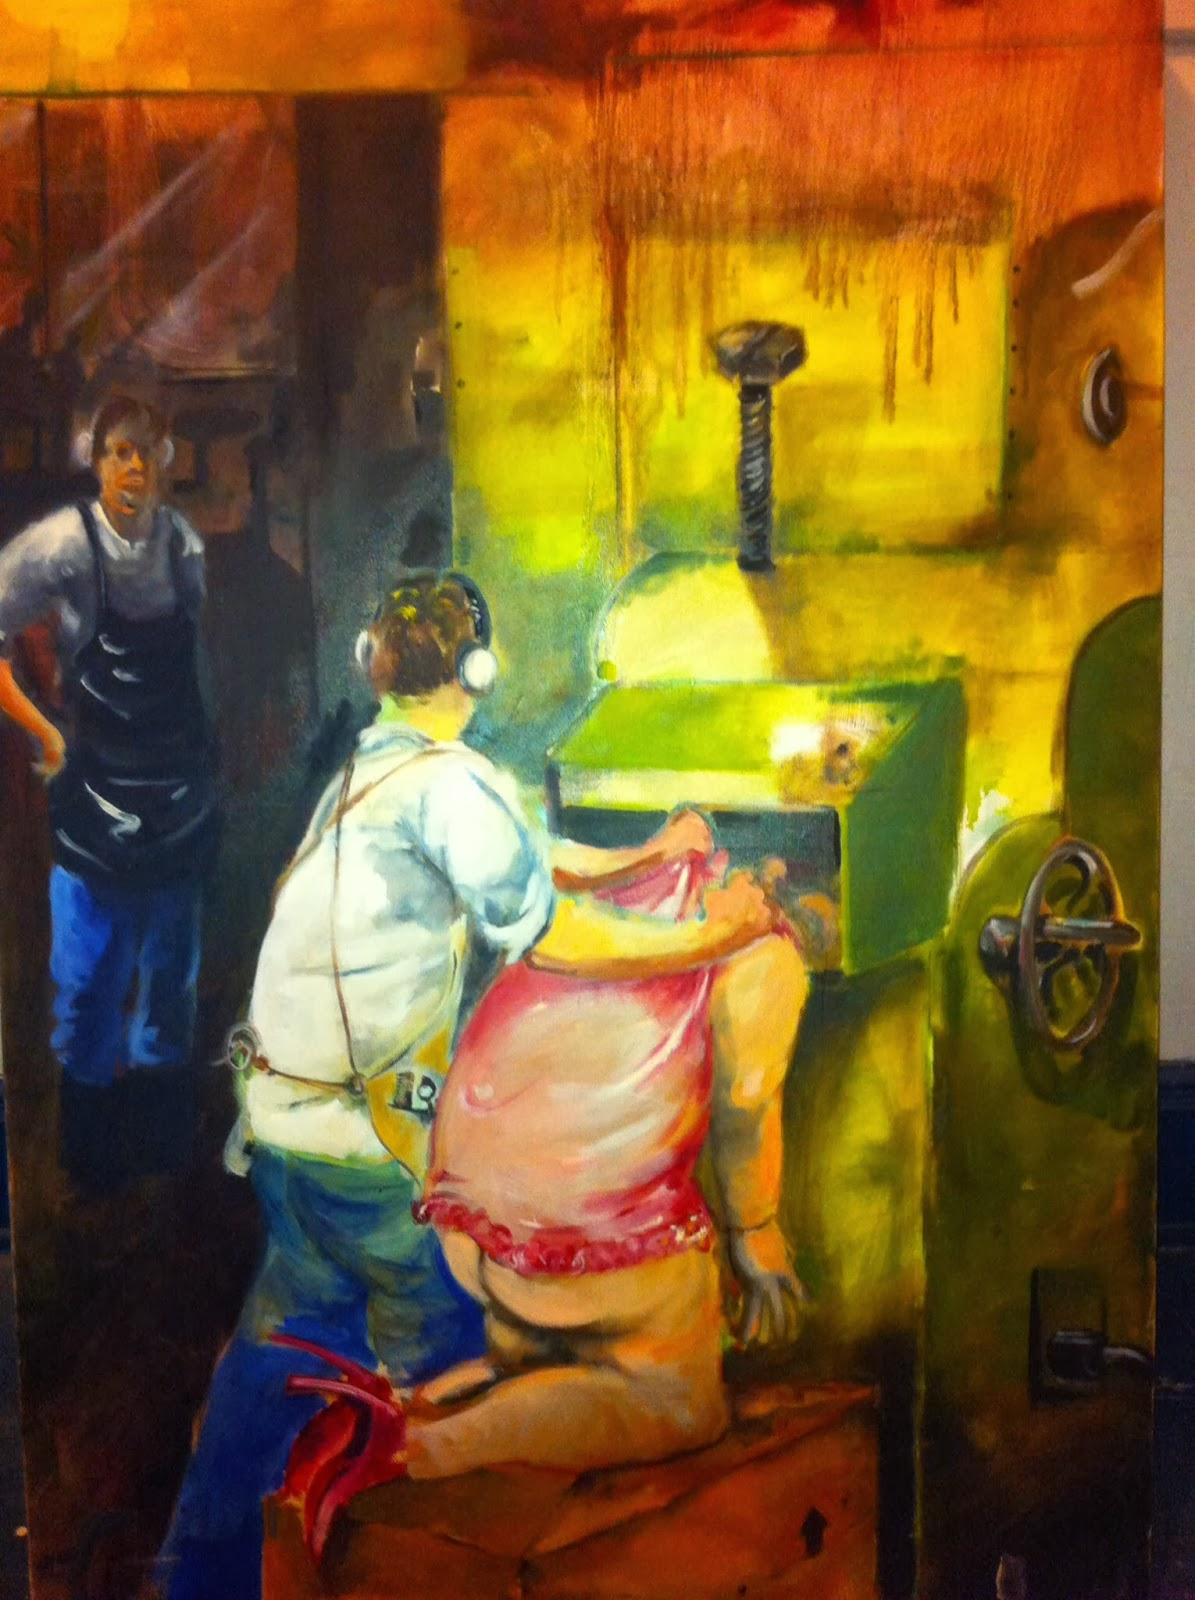 Sam Birchman The Other Three Points New Oil Paintings